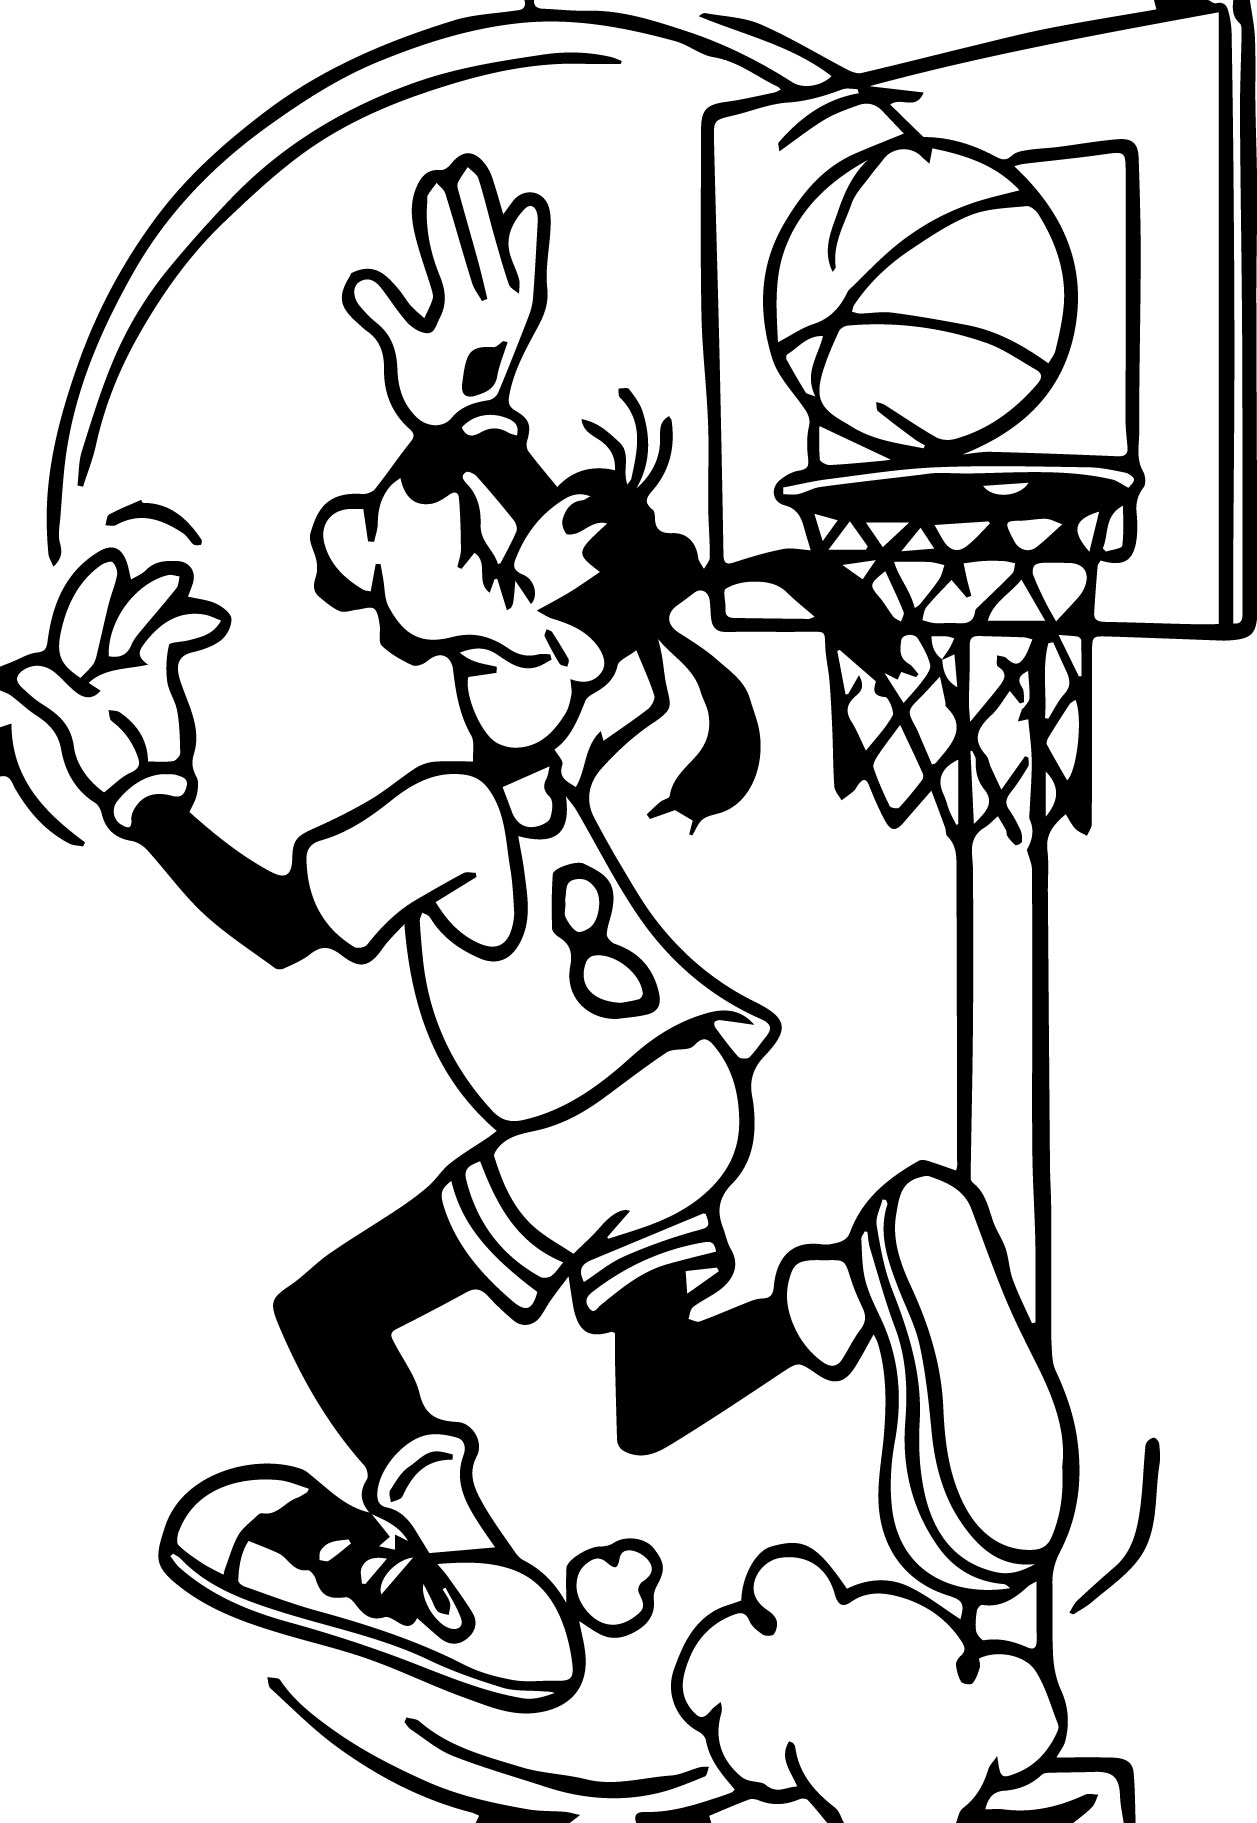 Coloring pages basketball - Goofy Playing Basketball Shot Coloring Pages